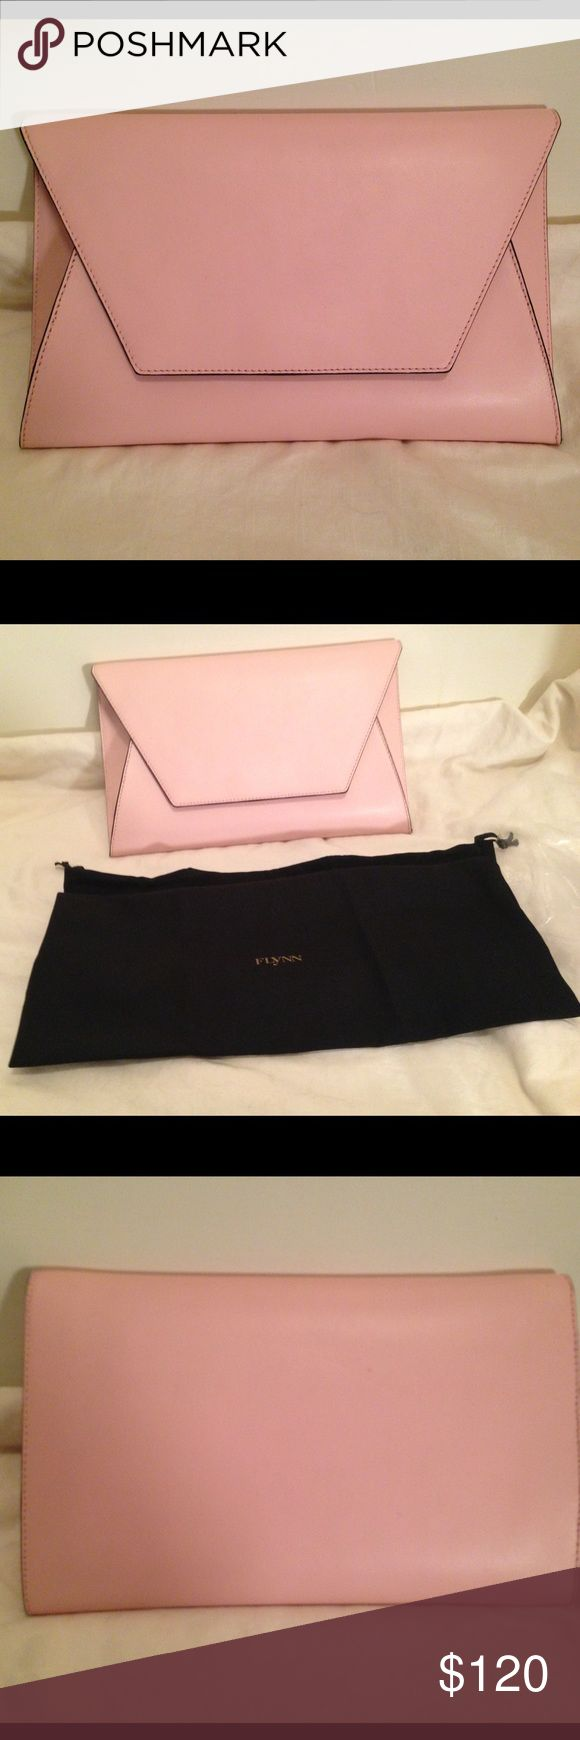 """NWT Flynn Fergie Clutch Soft Pink w/ Dustbag NWT Be ready for spring! Pretty pink Fergie clutch has leather exterior with poly fabric lining. Bag has flap top with magnetic closure. Interior has one slit pocket. Flynn is a high-end Australian brand that designs sophisticated yet functional handbags. Approximate dimensions are: Length: 11.5"""", Height: 7"""", Depth: 2"""". Finally a clutch with room for your stuff. (Area 8) Flynn Bags Clutches & Wristlets"""